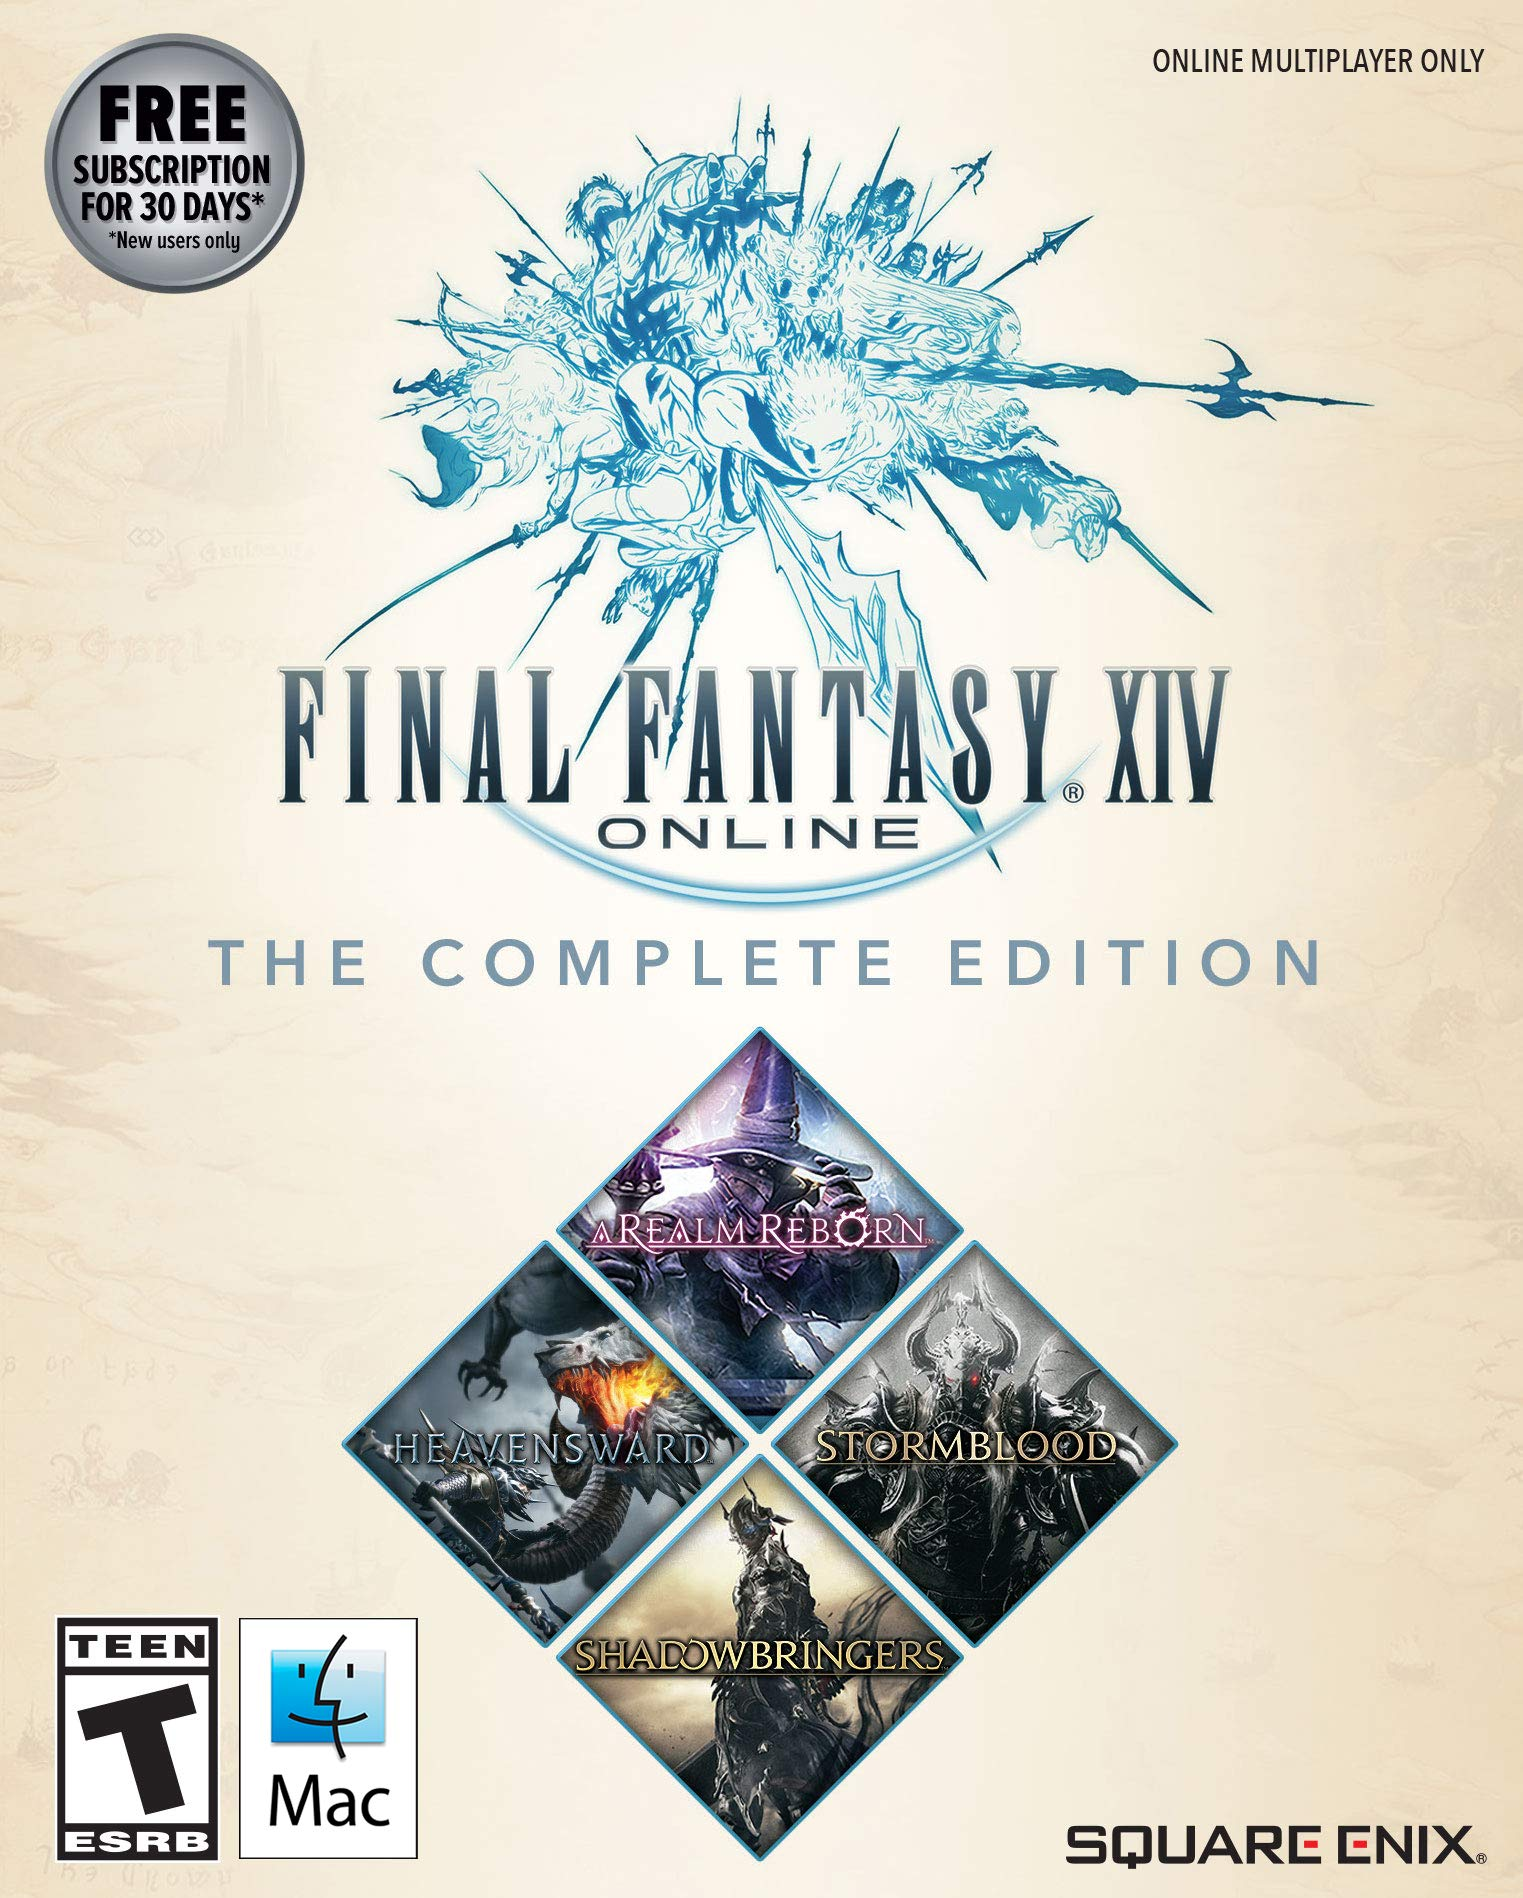 Final Fantasy XIV Online - Complete Edition  [Online Game Code] by Square Enix